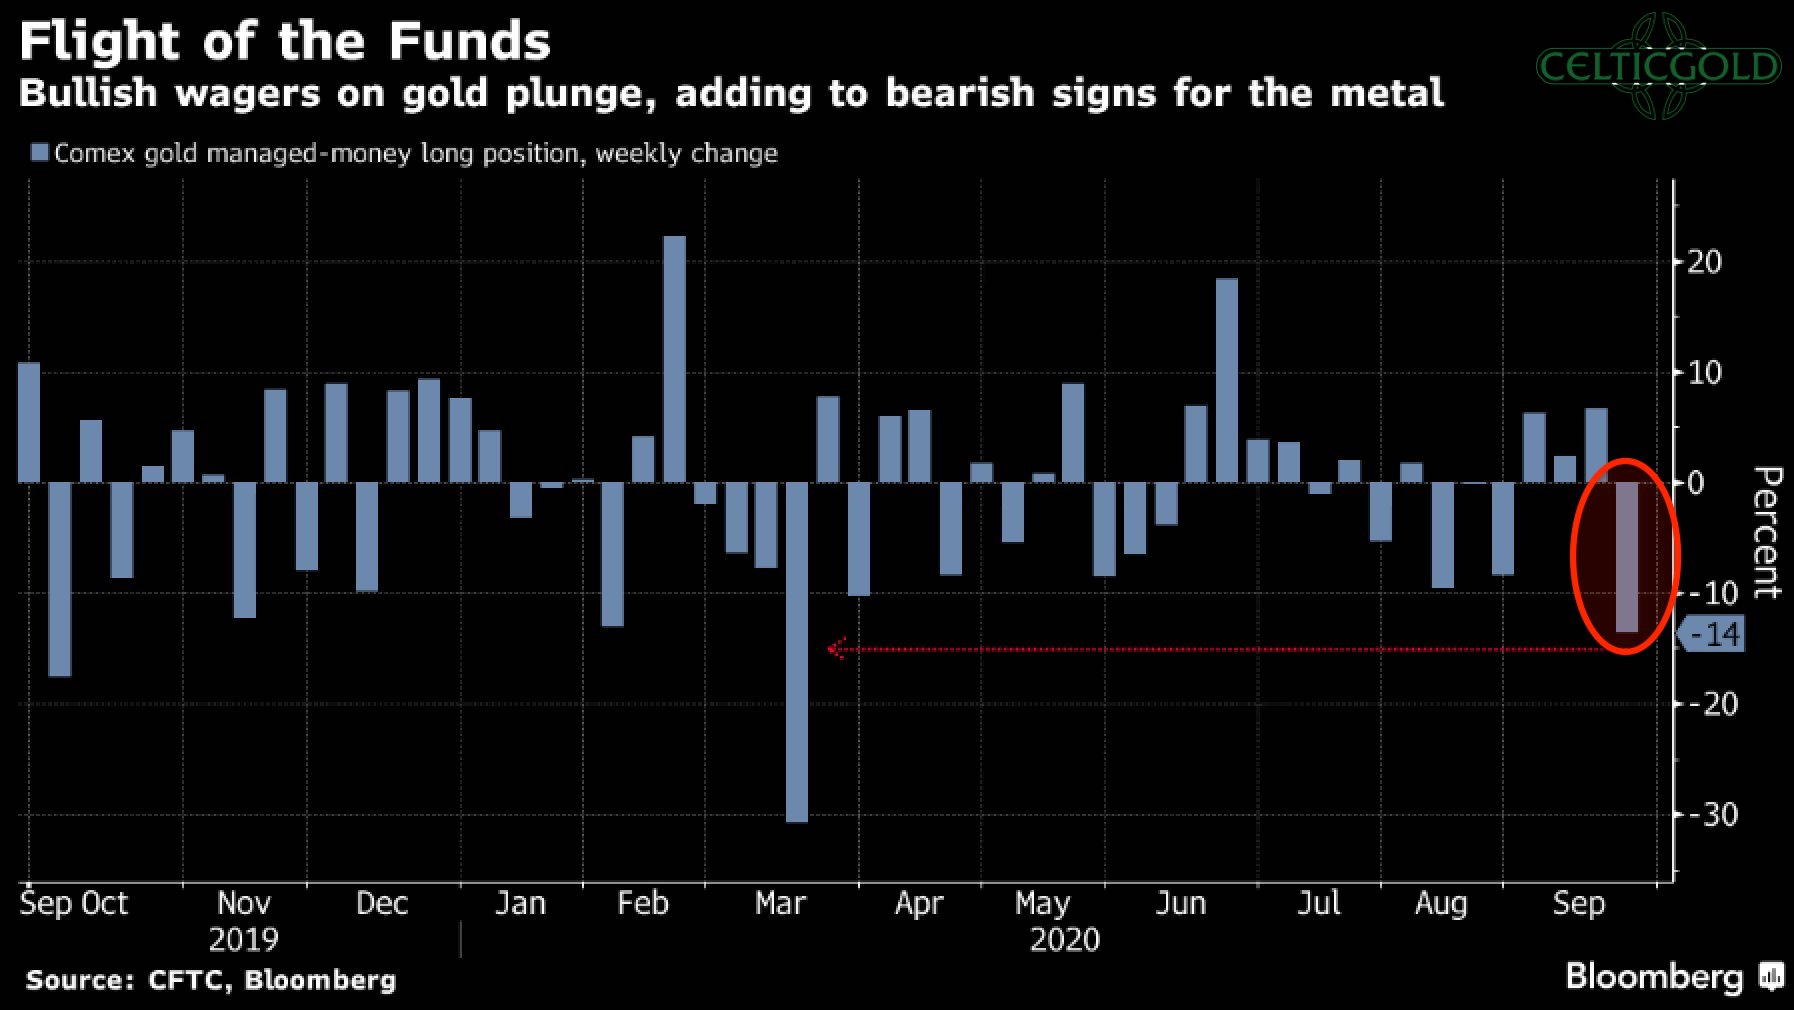 COMEX Flight of the Funds, Source Bloomberg